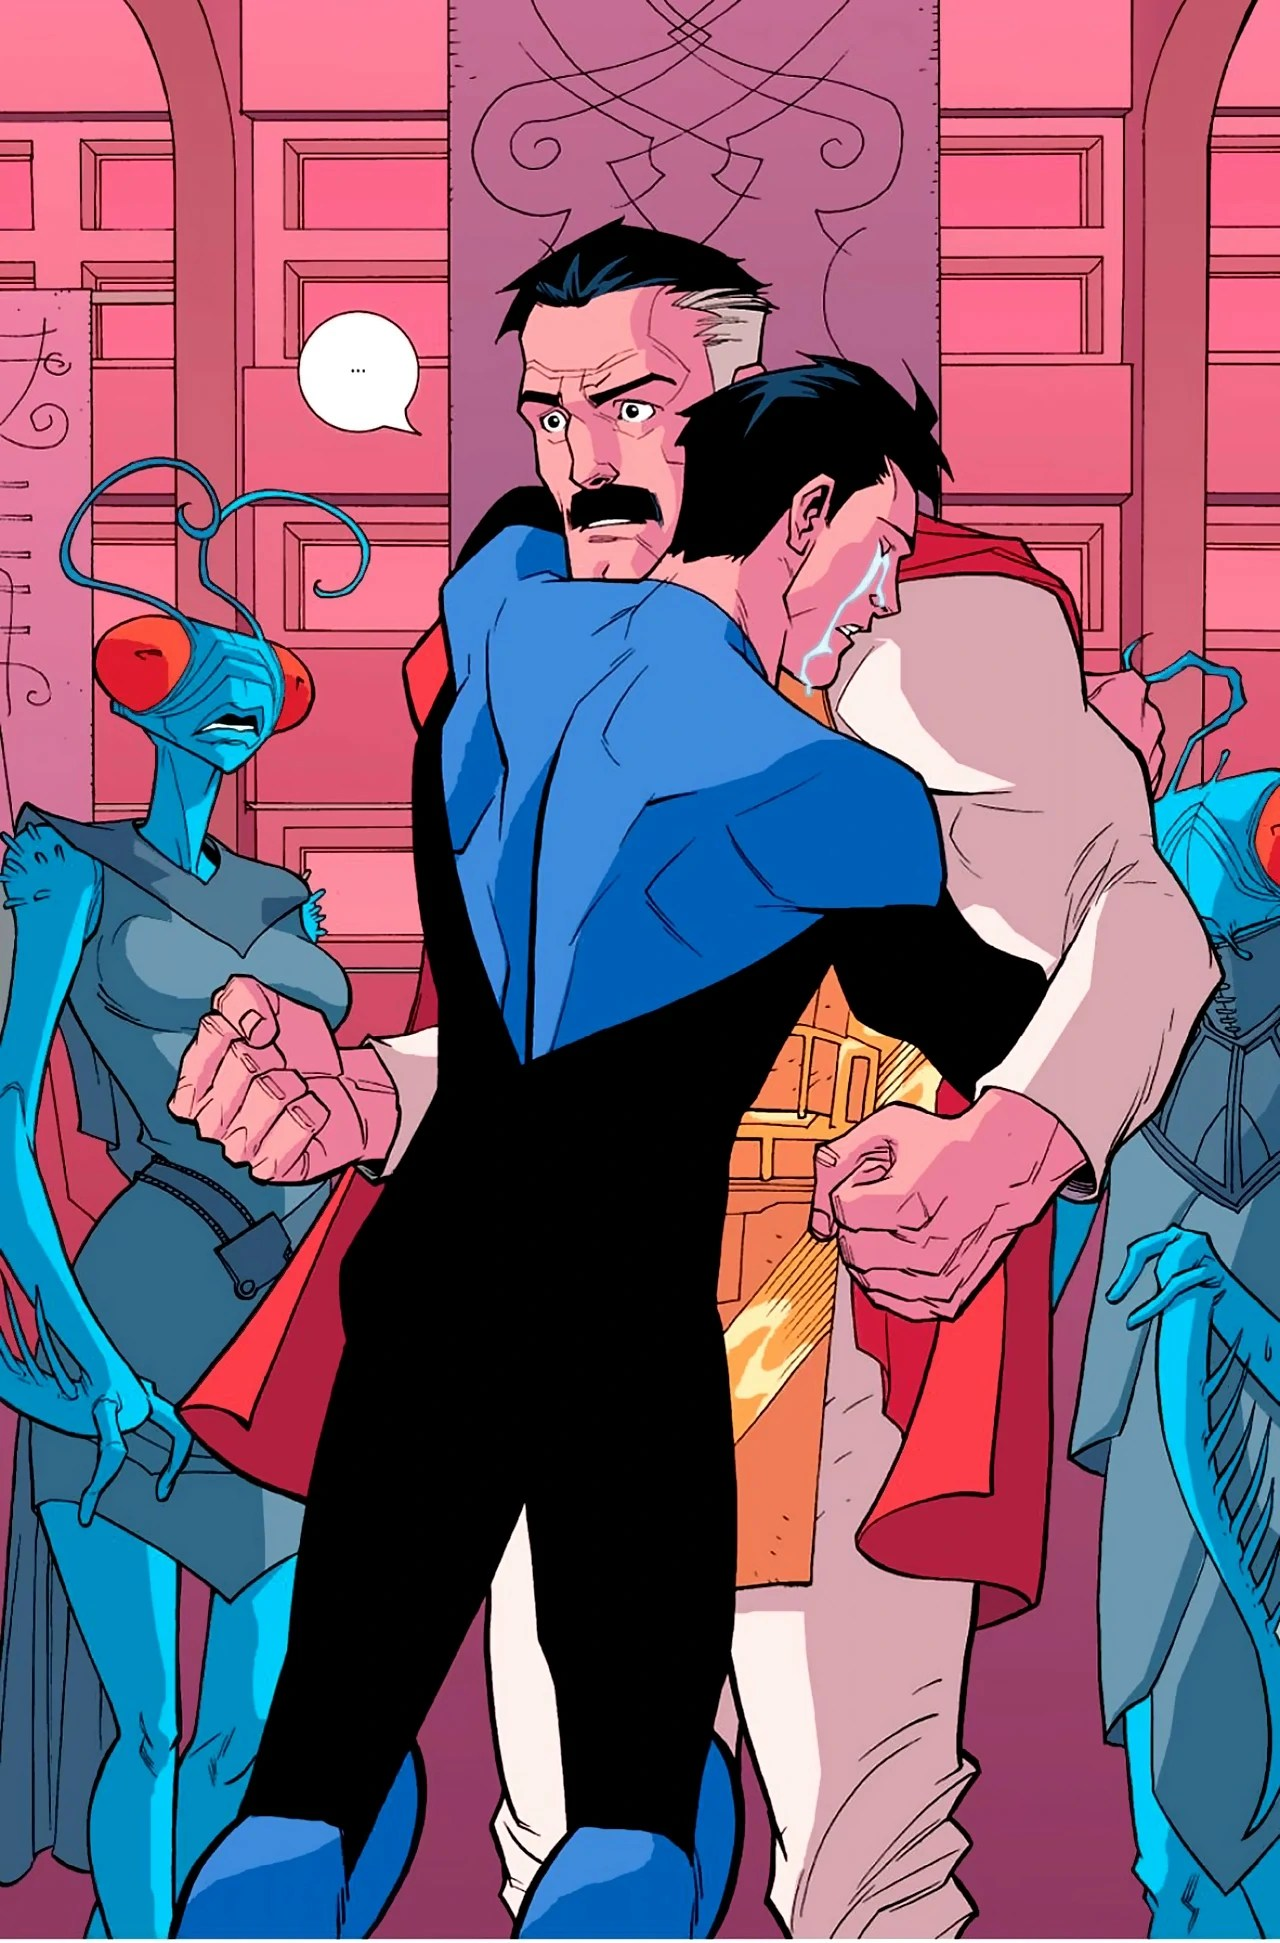 Invincible Vol 1 26  Image Comics Database  FANDOM powered by Wikia